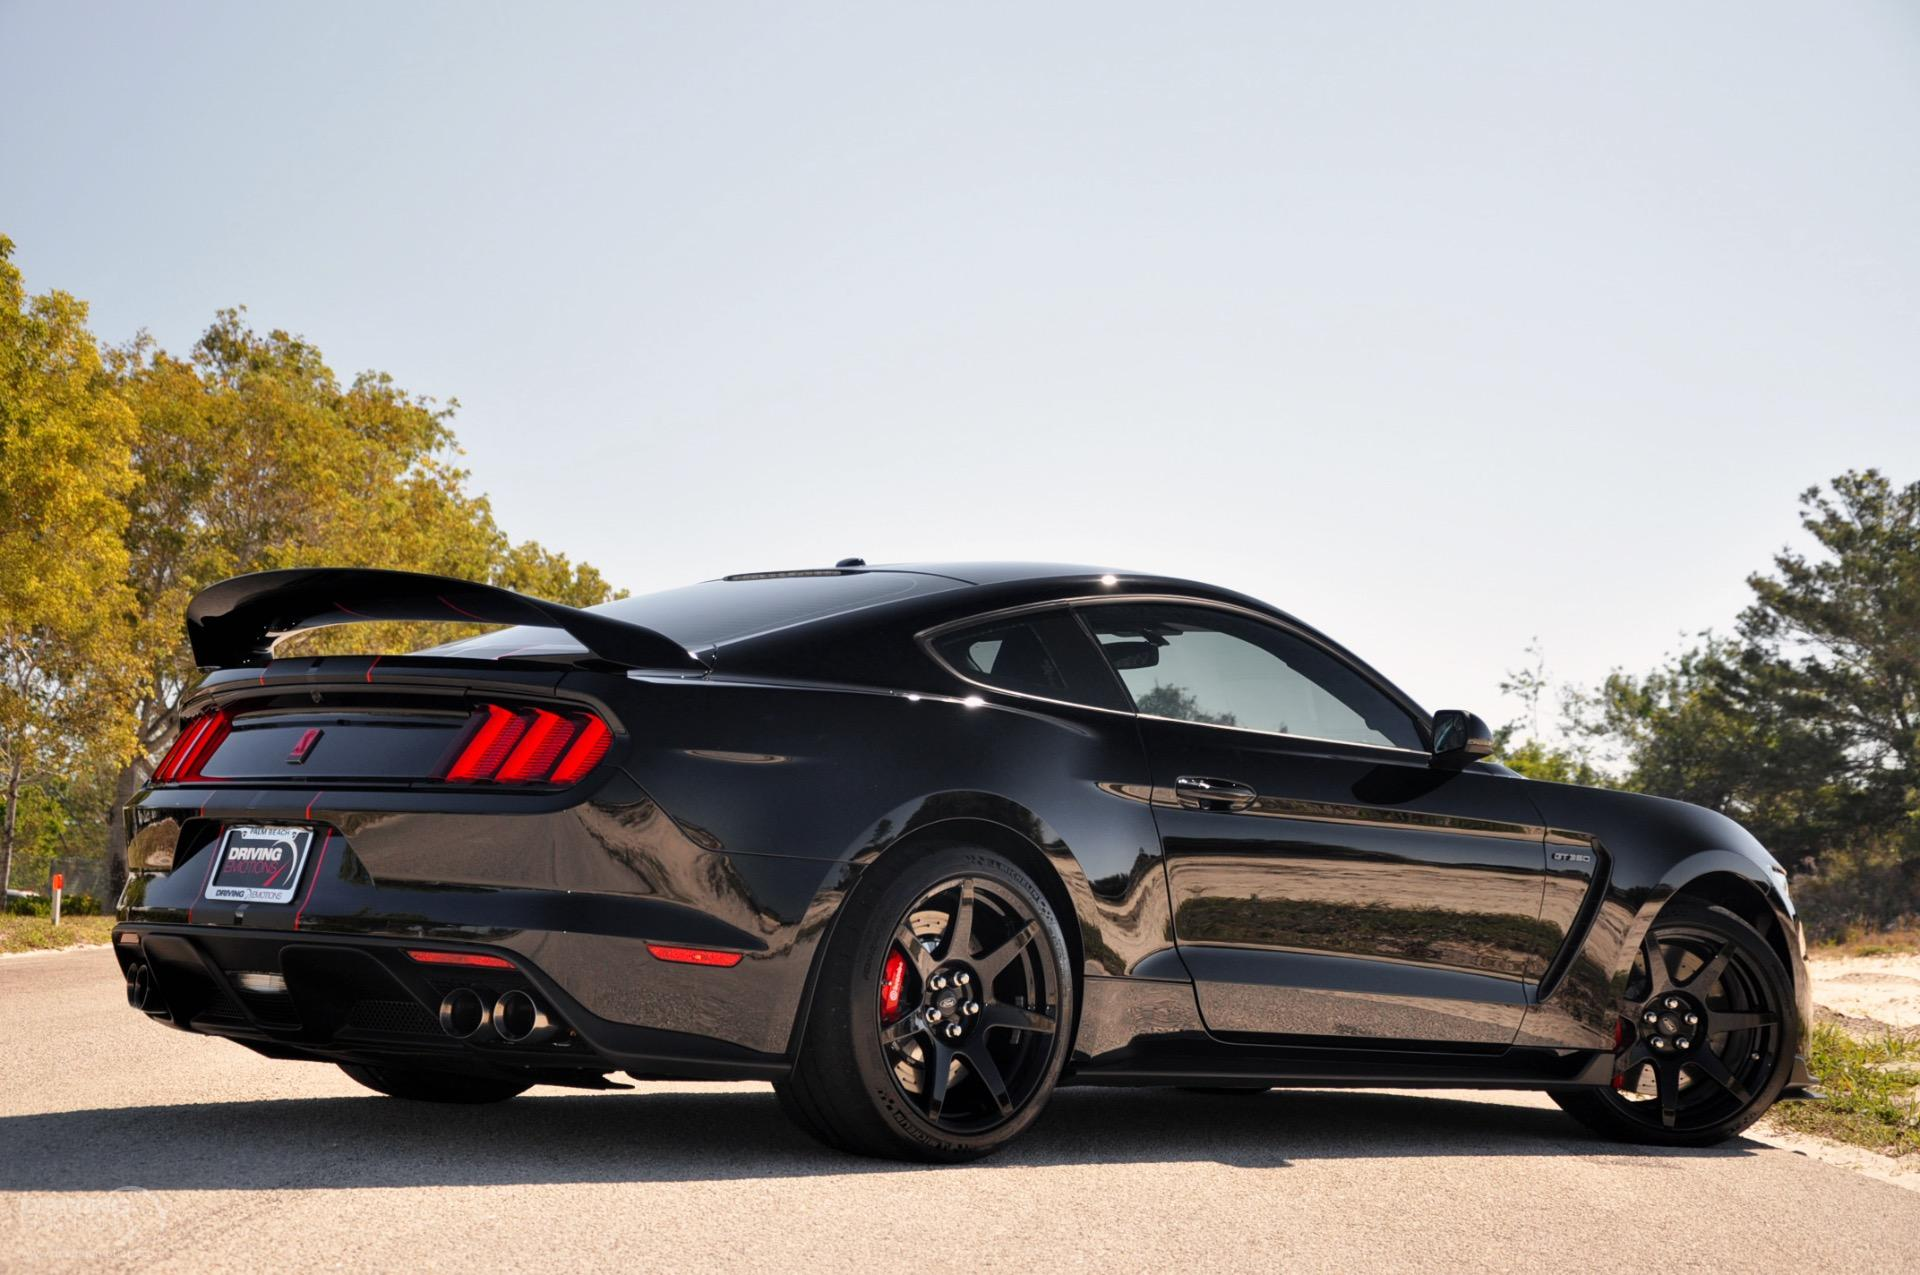 gt350r mustang shelby ford info contact